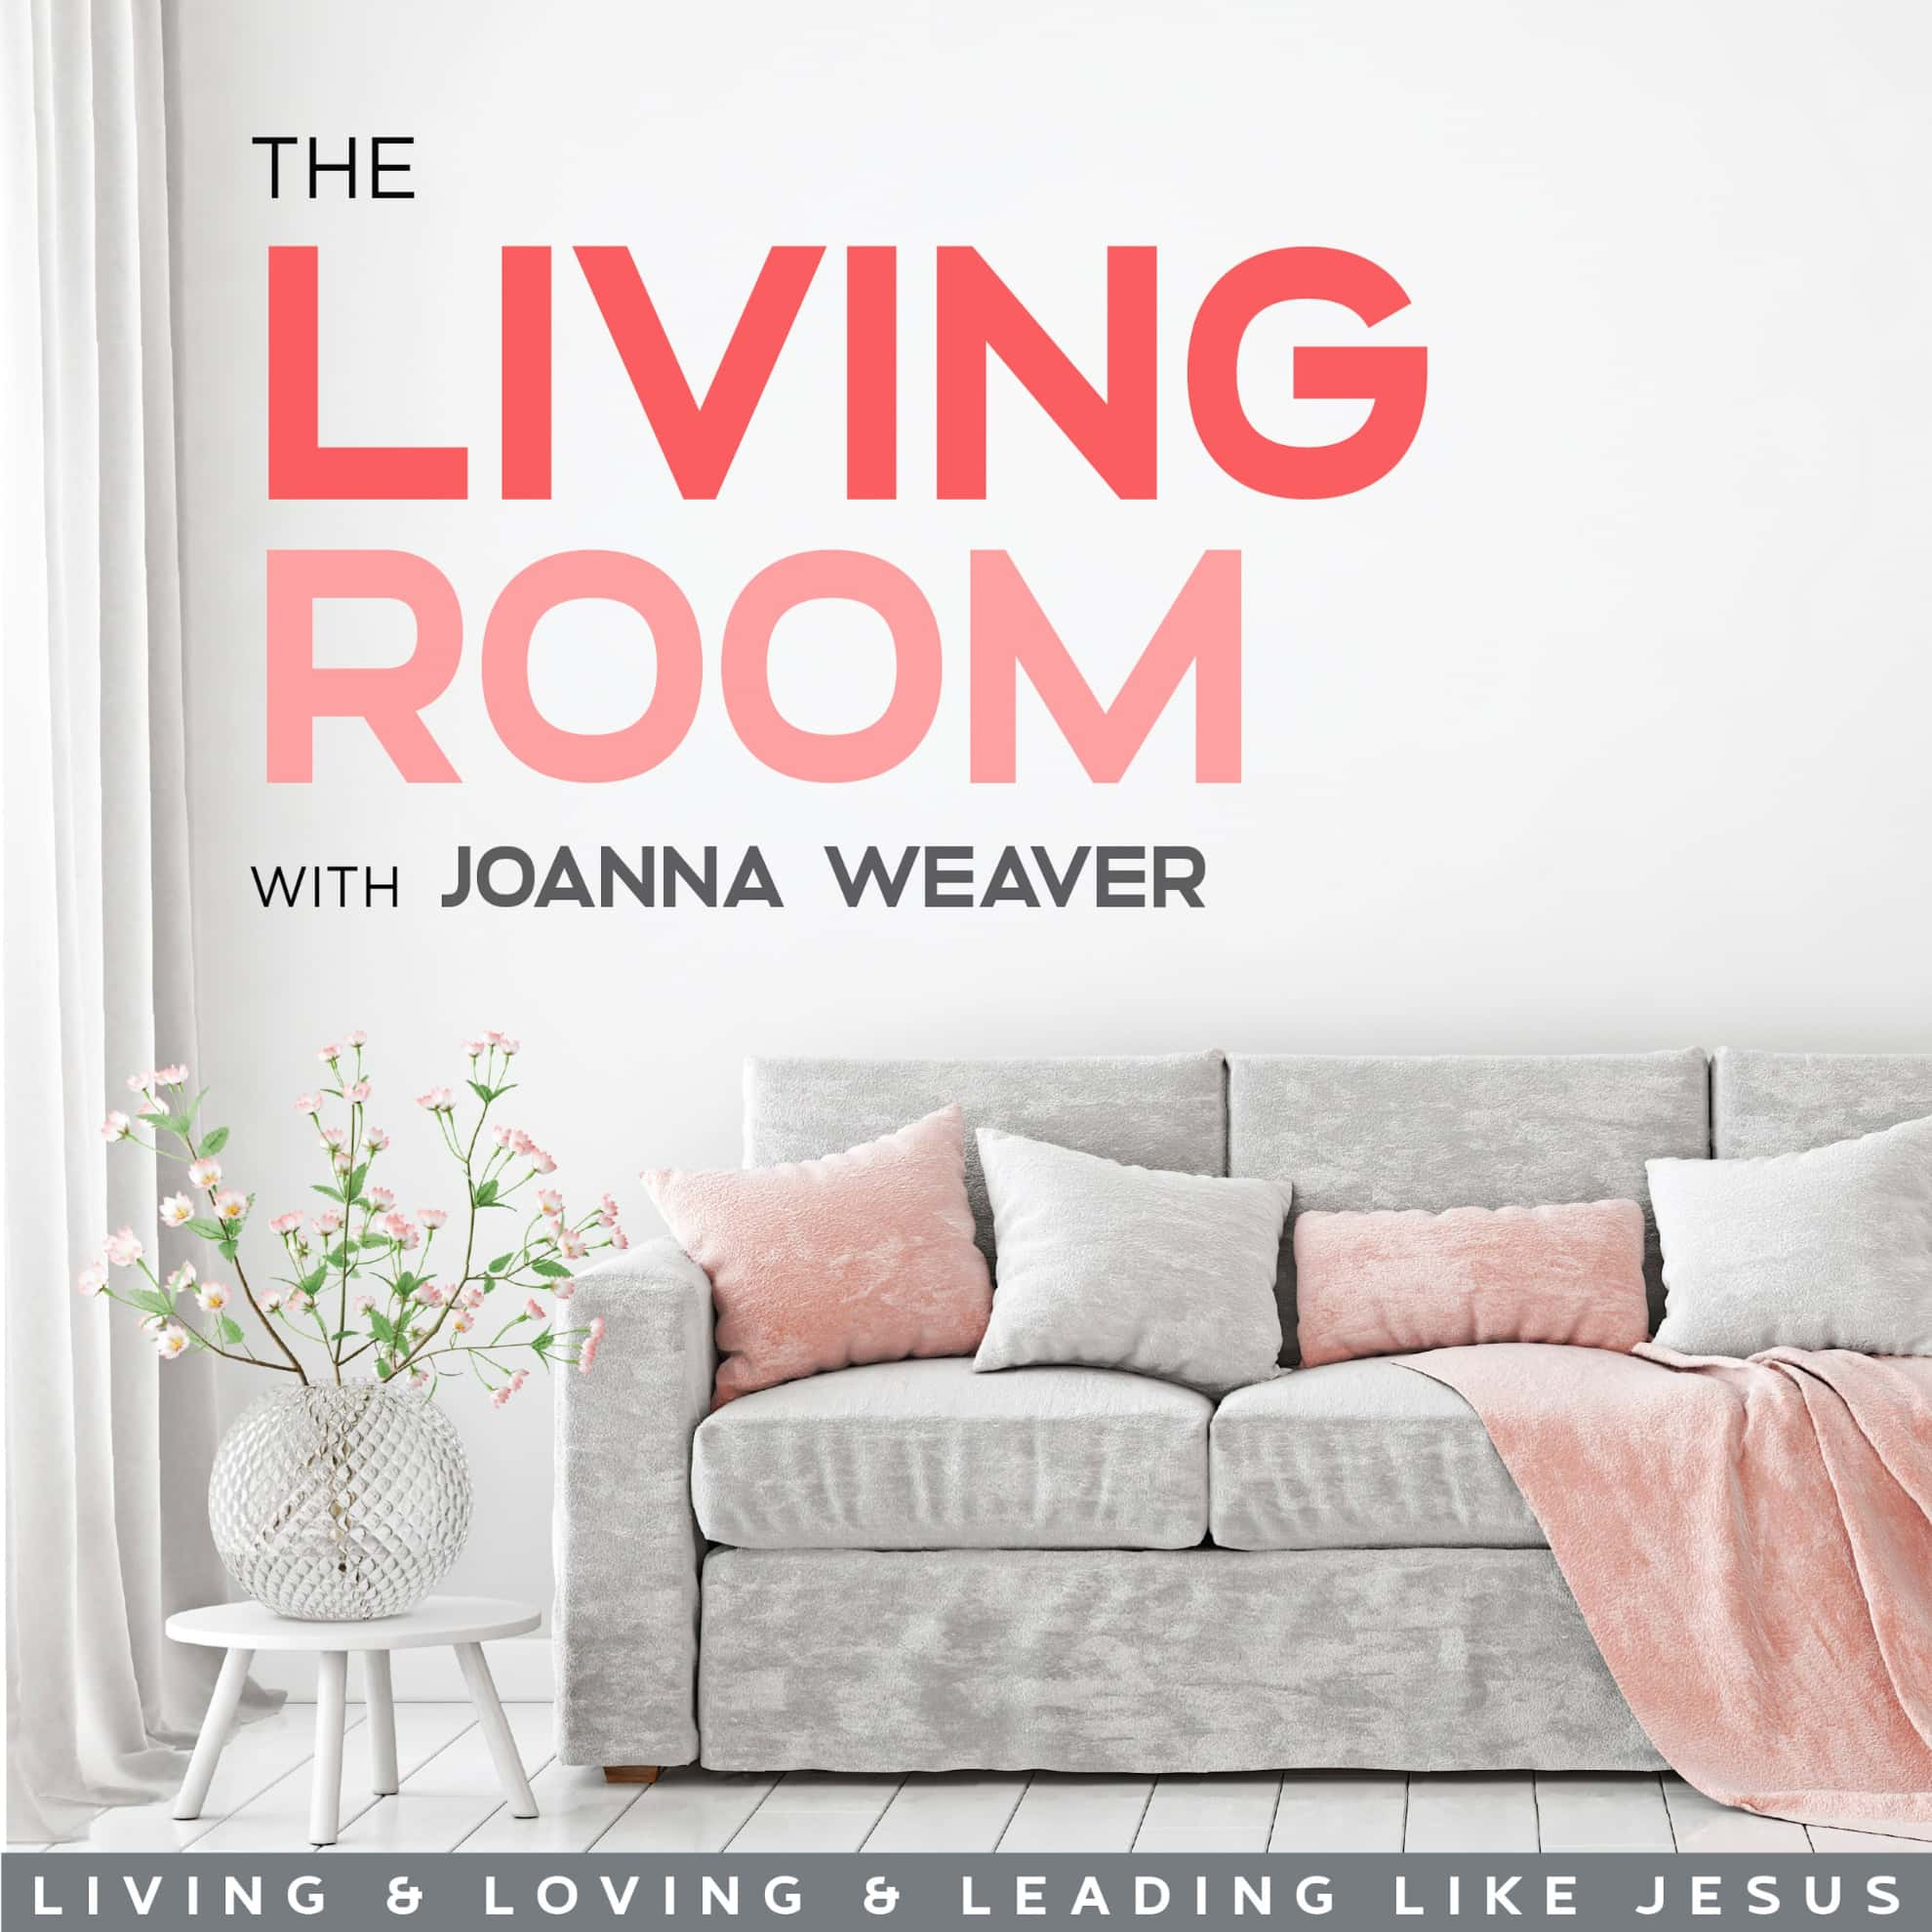 The Living Room with Joanna Weaver